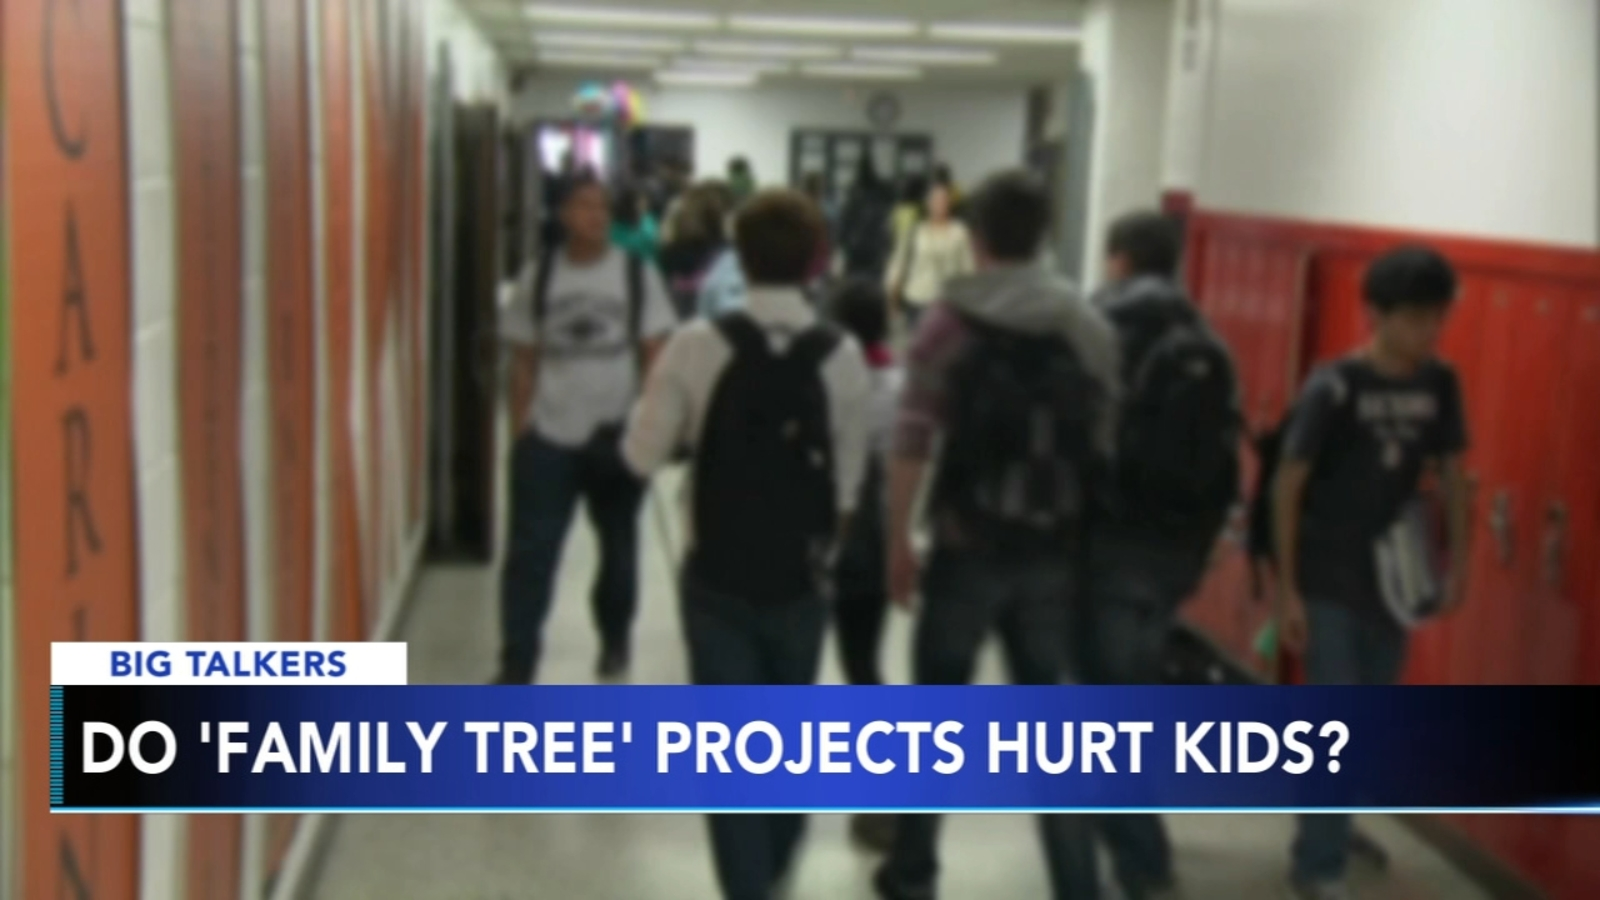 Mom of adopted kids challenges school family tree projects